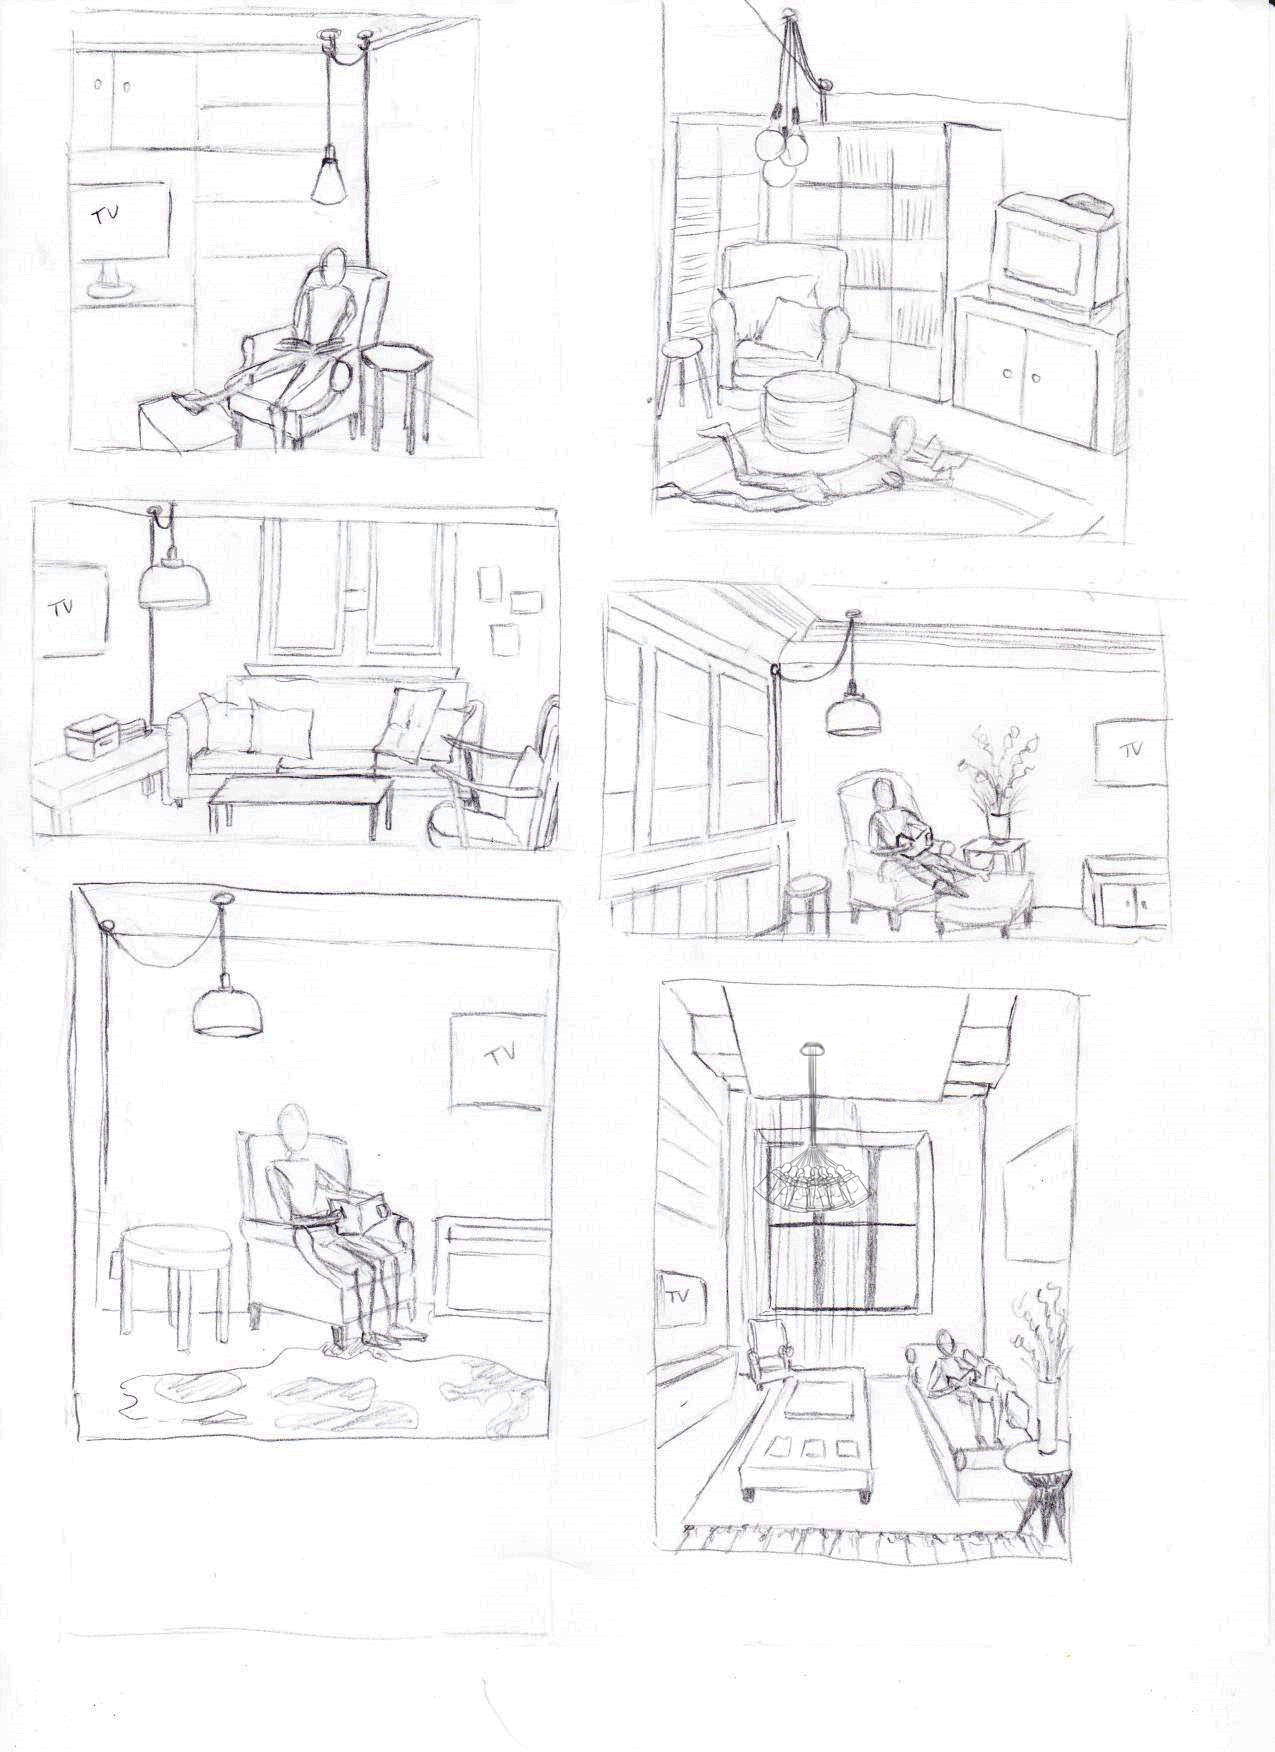 thumbnail, drawings, sketches, sketch, drawing, living room, linework, lamps, lighitng, lamp, swag light